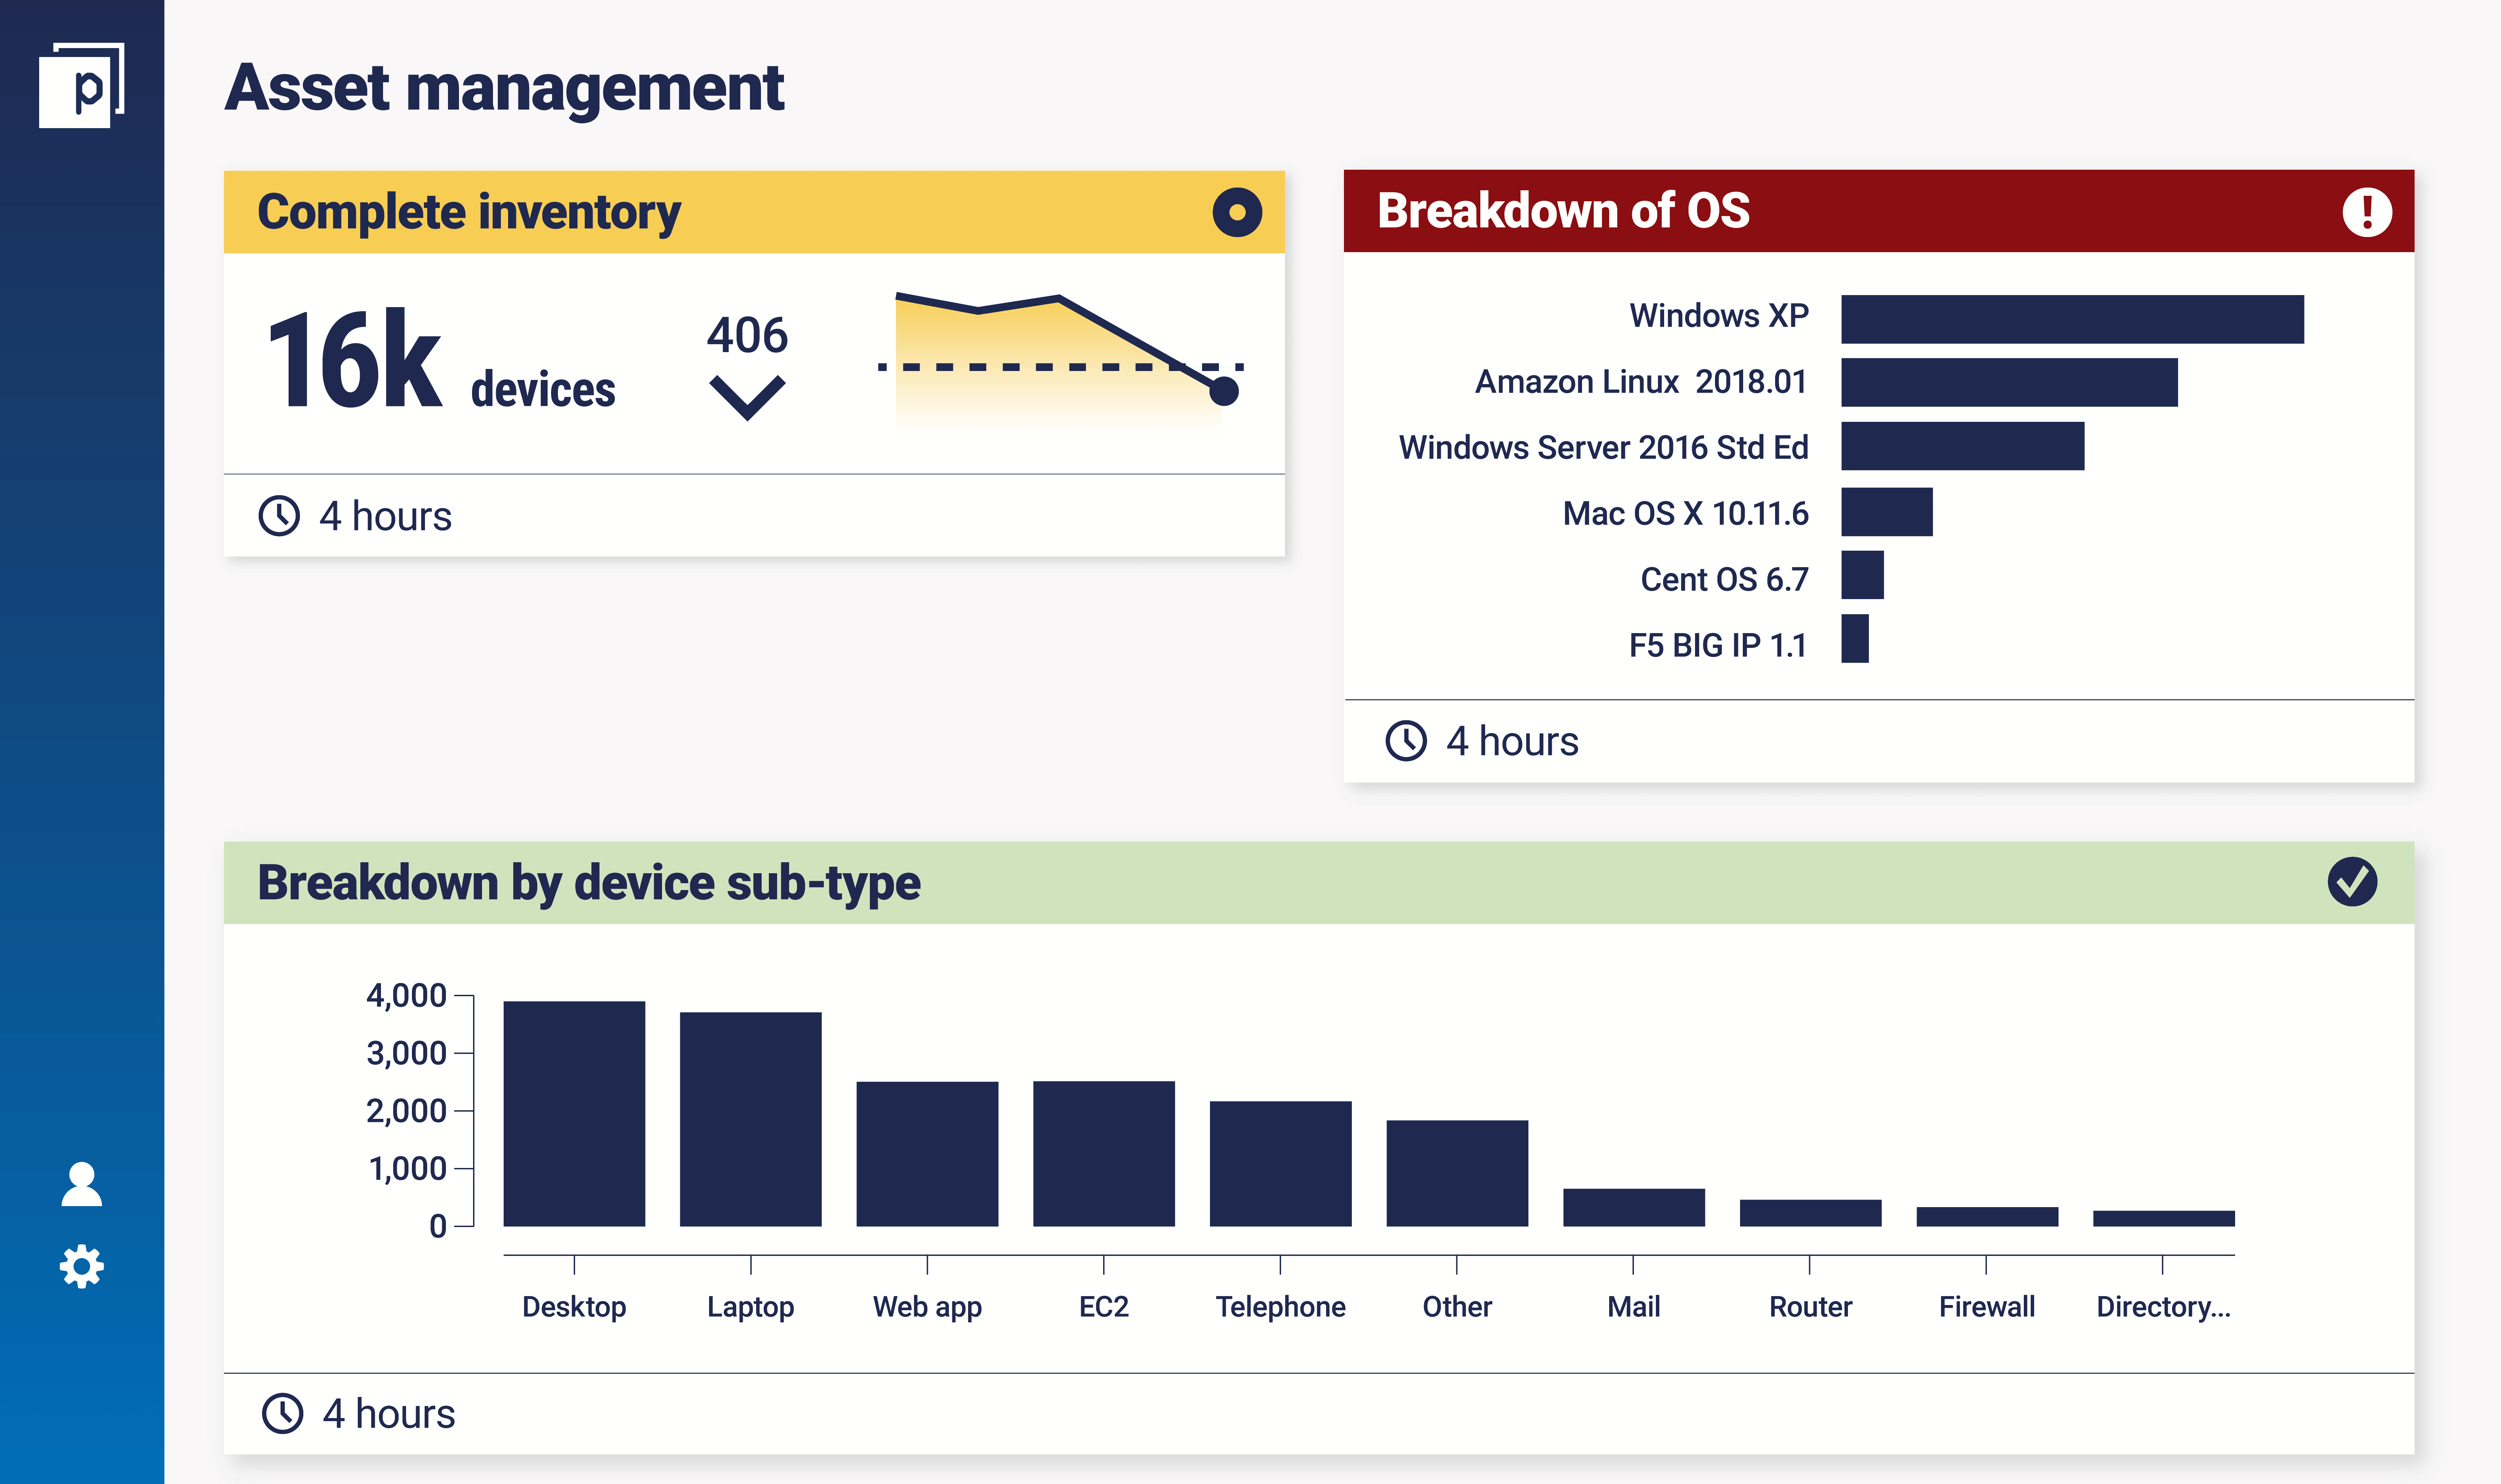 Asset management dashboard_IT security risk assessment page